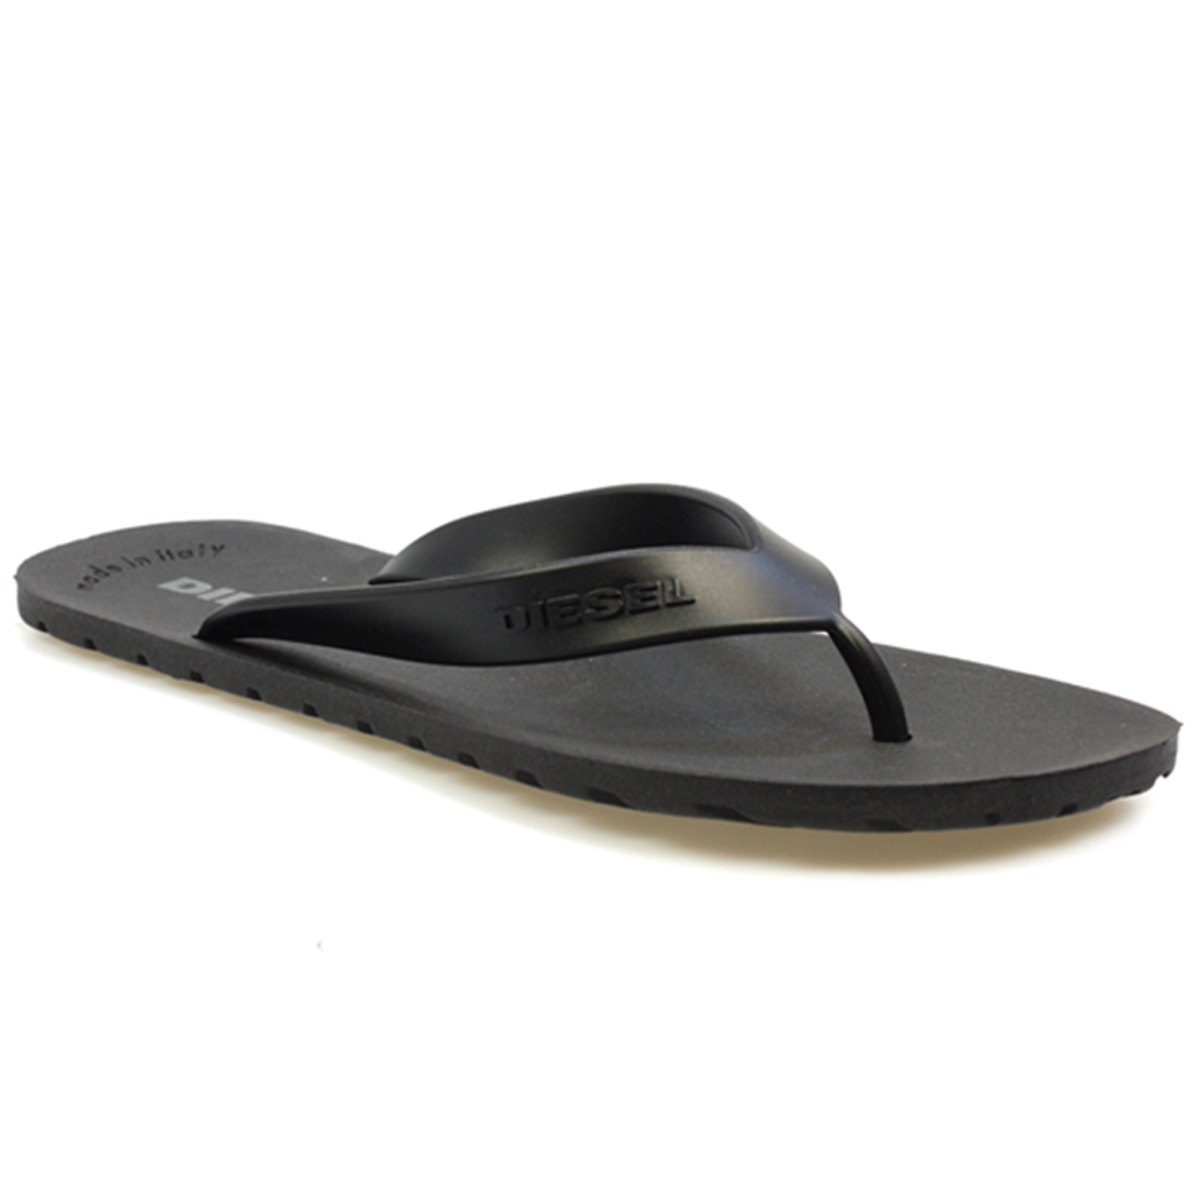 Diesel Flip Flops in Black shopping online cheap price outlet amazon clearance latest collections find great for sale free shipping wholesale price lMzYpFMZU